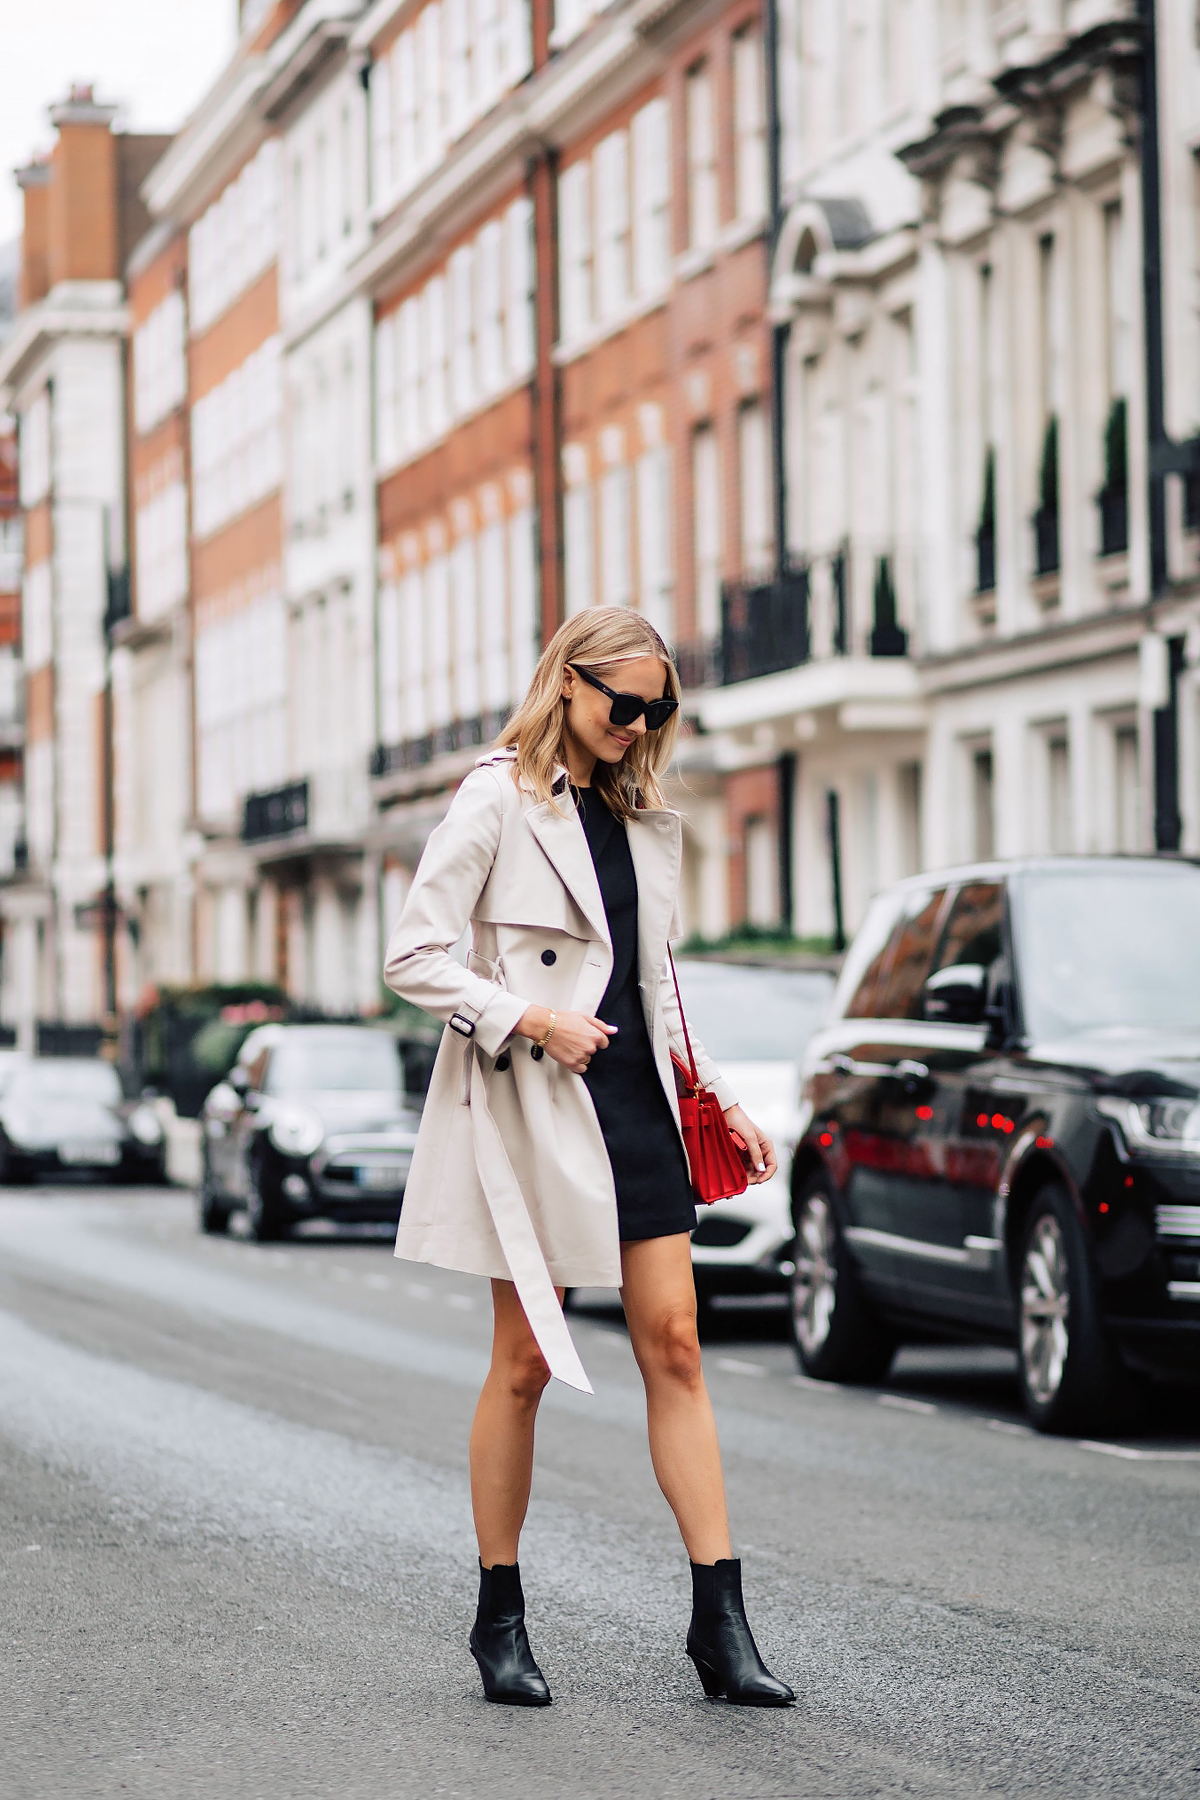 Blonde Woman Wearing Club Monaco Trench Coat Black Dress Black Booties Outfit Red Handbag Fashion Jackson San Diego Fashion Blogger London Street Style